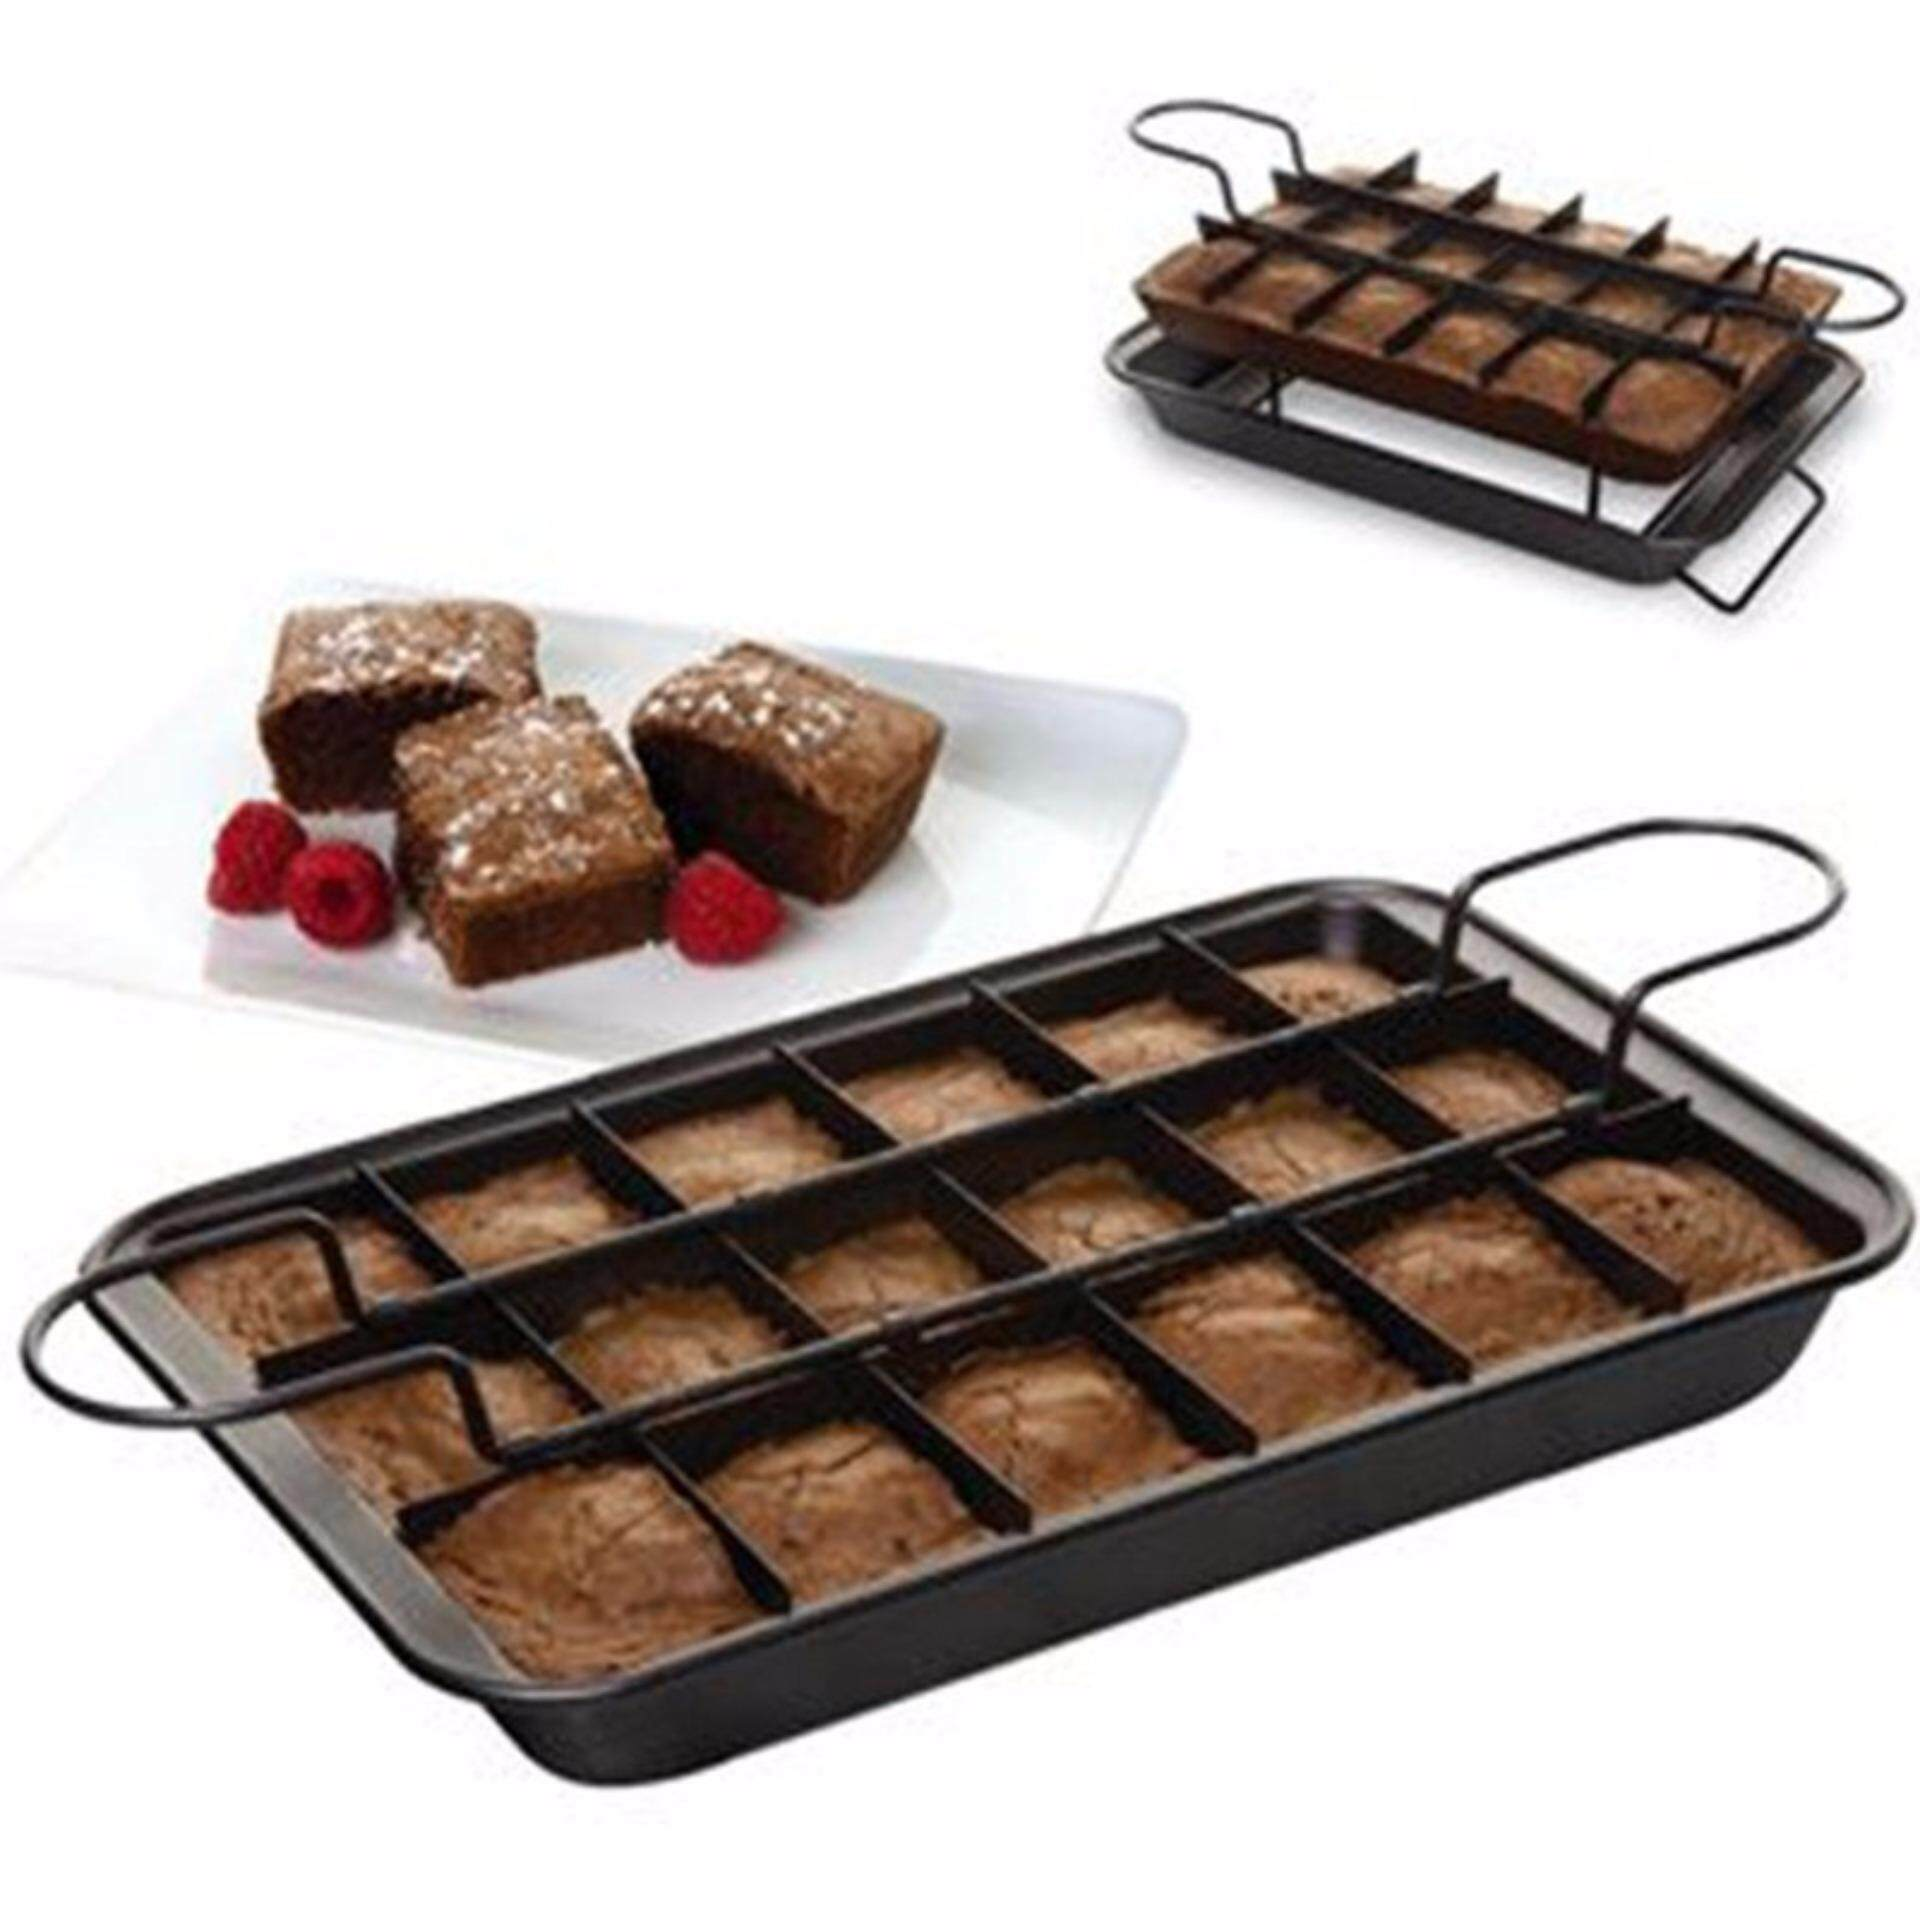 Brownie Pan,metallic Professional Slice Solutions Brownie Pan, 9-Inch-By-13-Inch - Intl By Cessna.